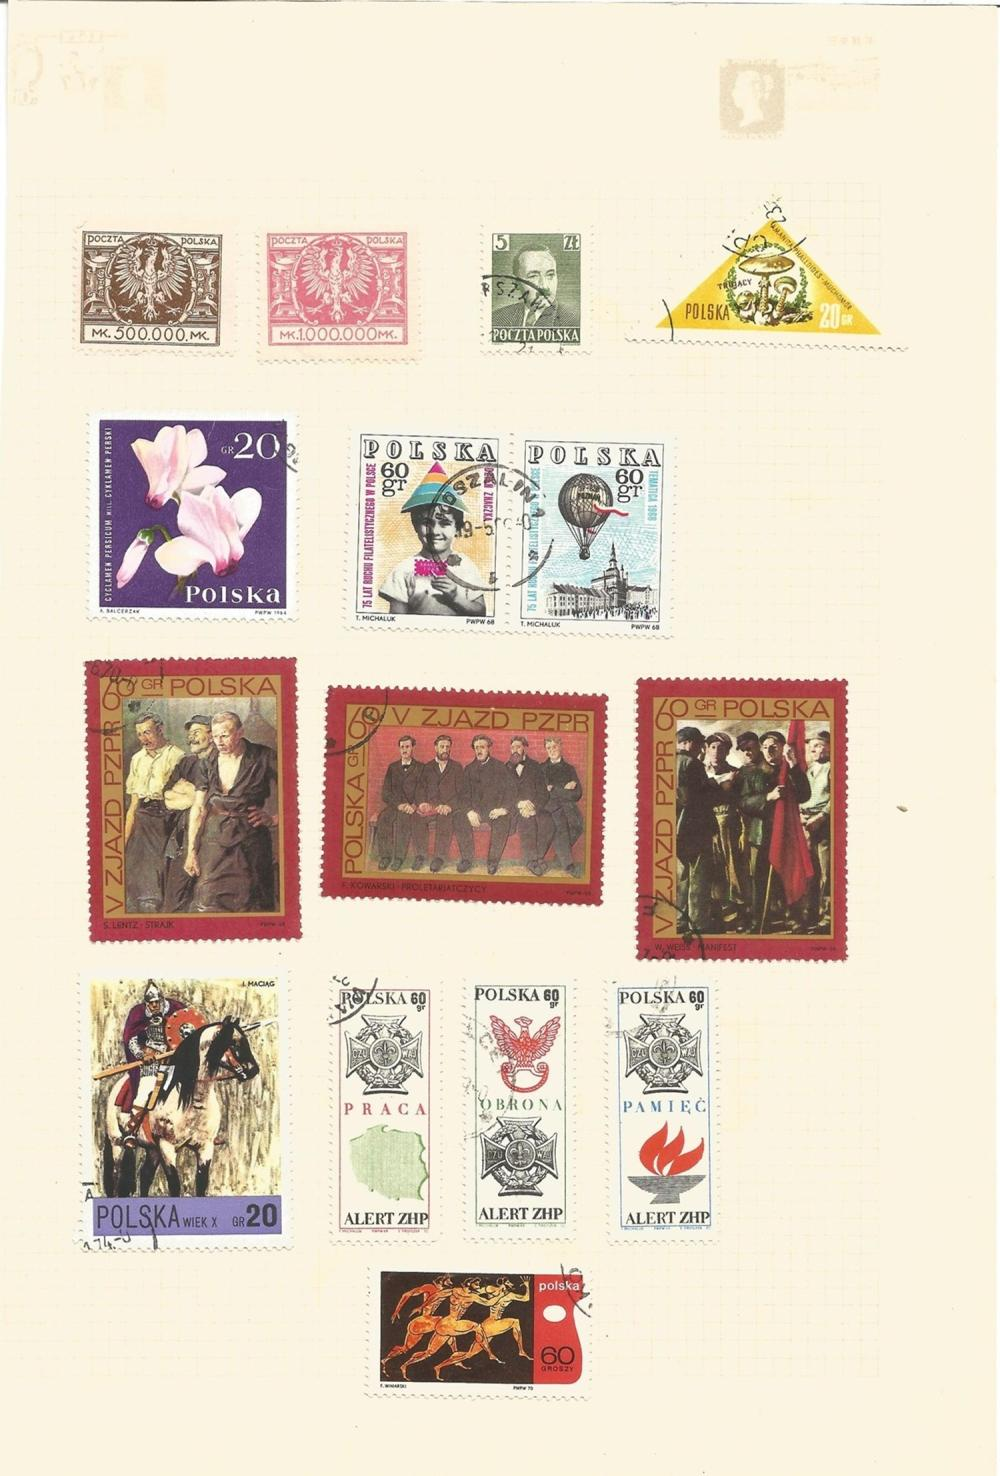 Bulgaria, Yugoslavia, Poland, stamps on loose sheets, approx. 40. Good condition. We combine postage